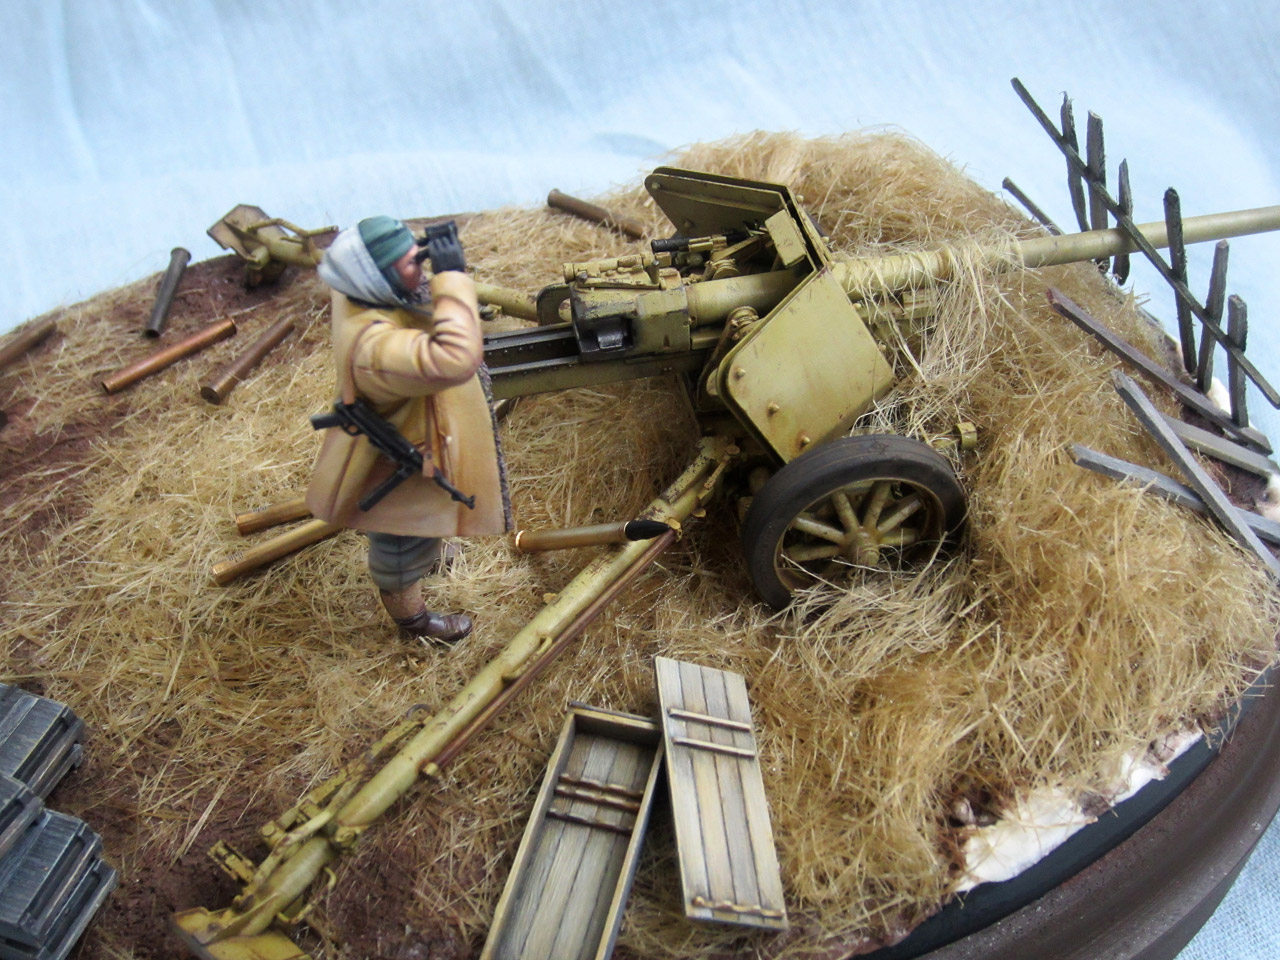 Dioramas and Vignettes: The Silence, photo #2